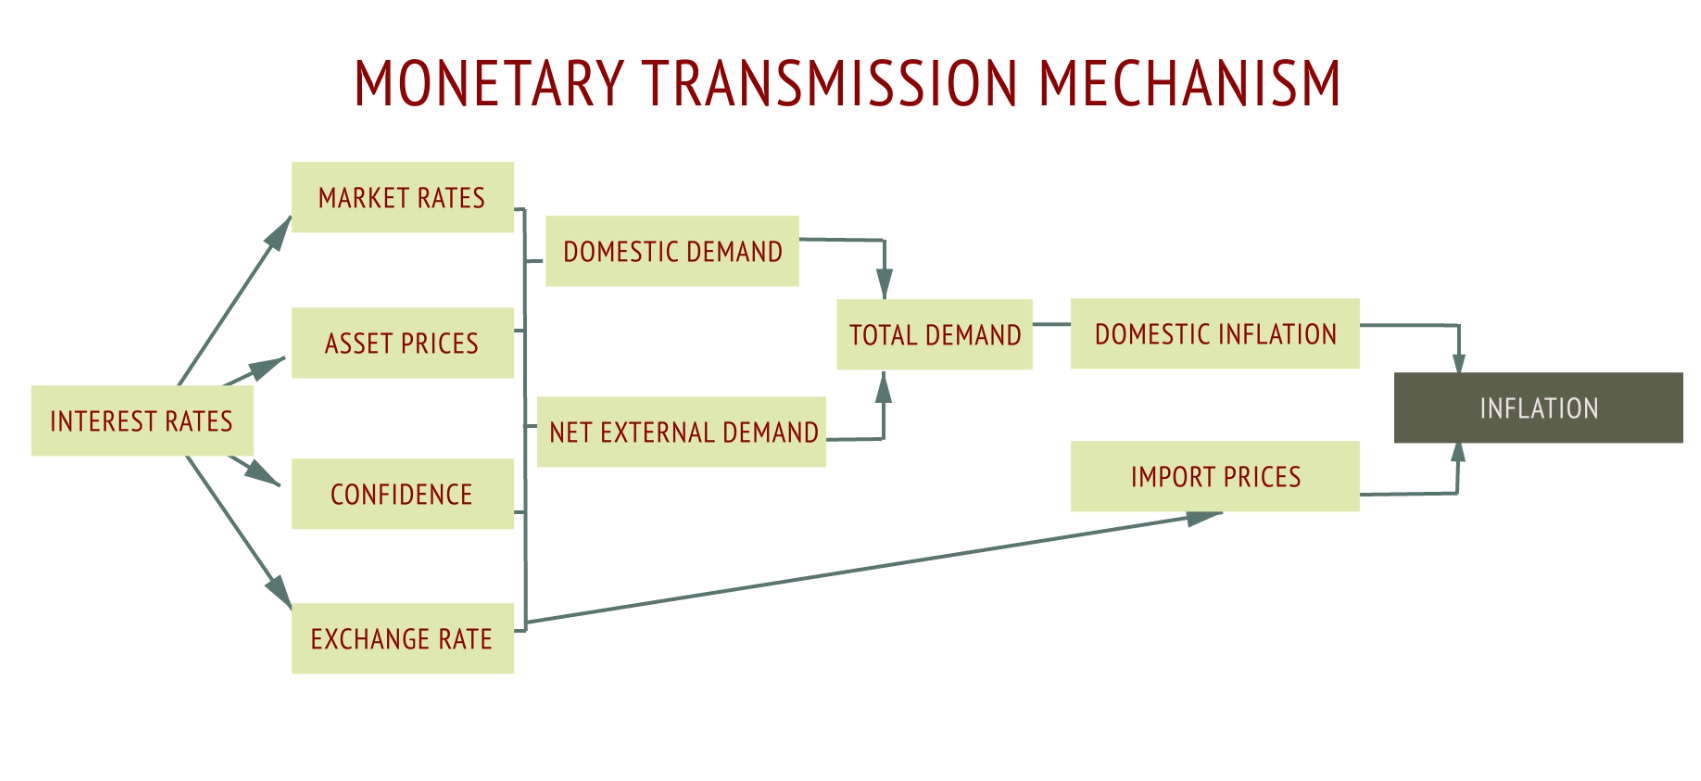 Monetary transmission mechanism